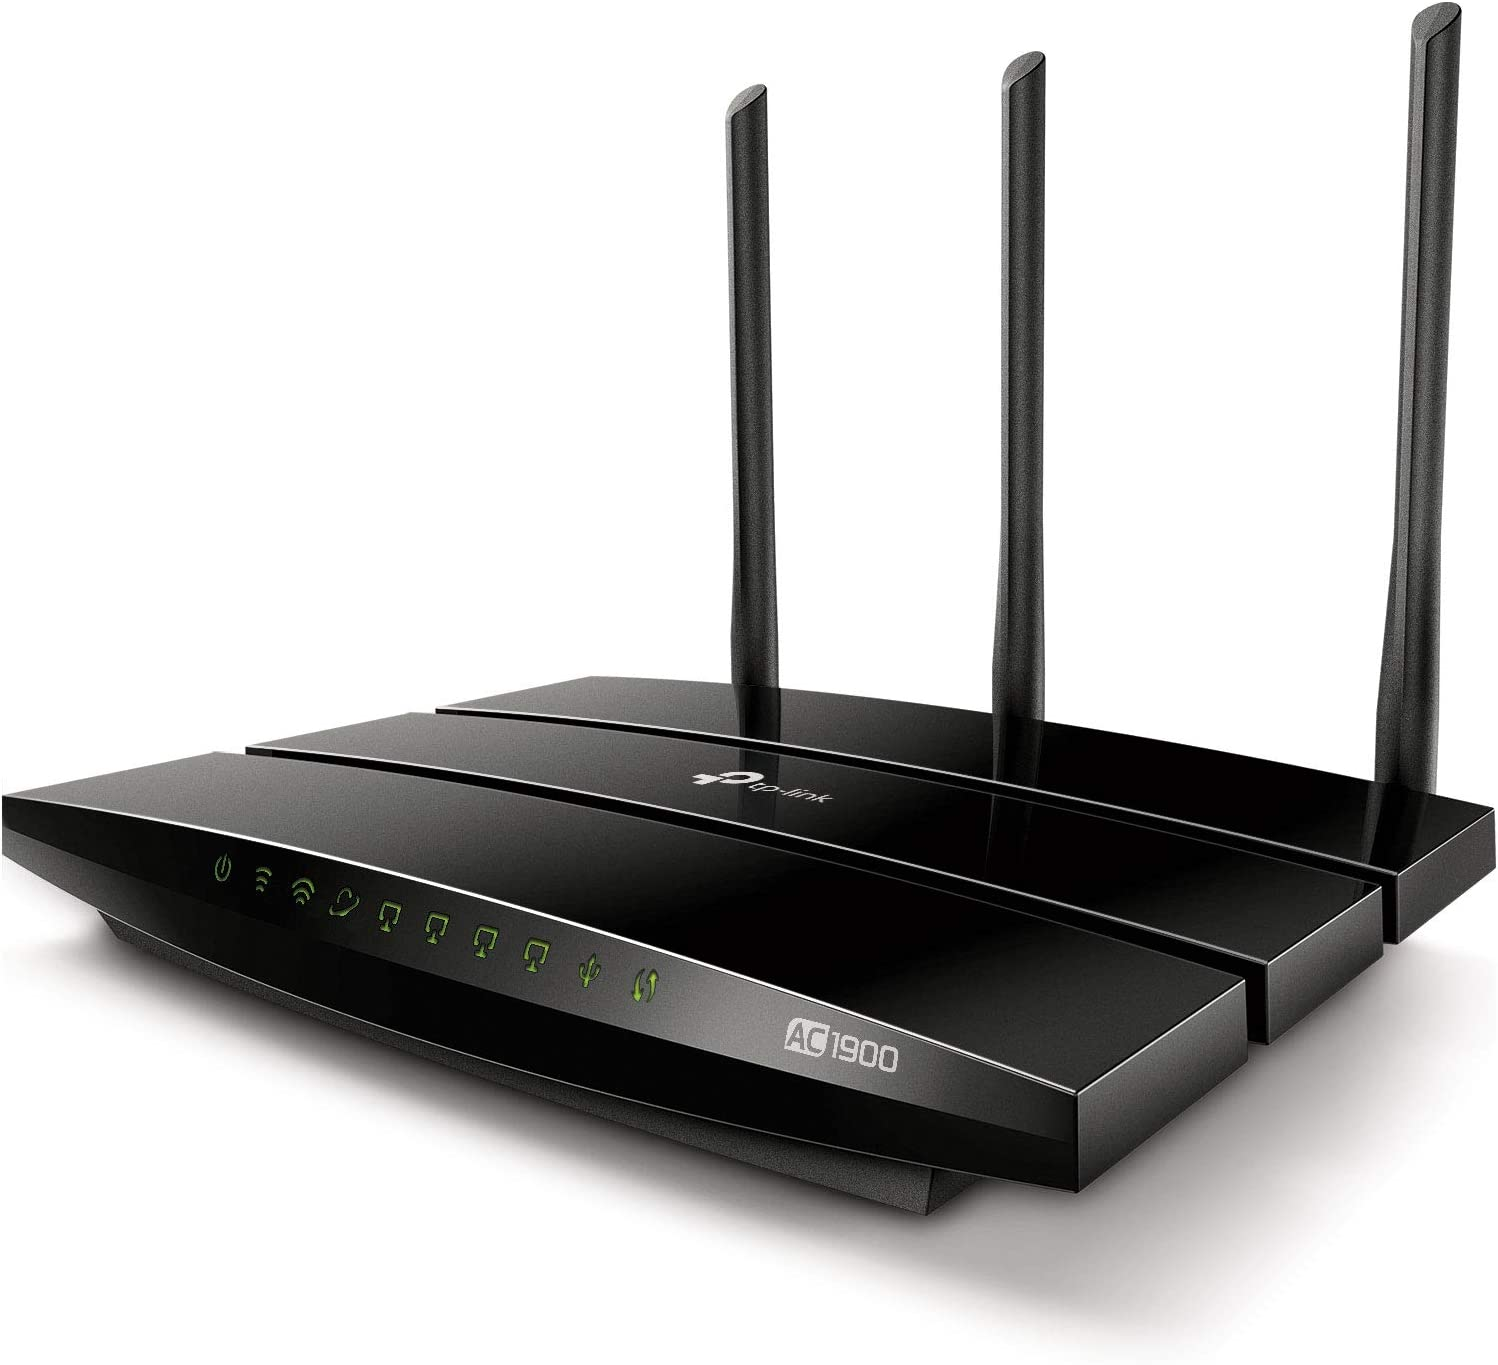 TP-Link AC1900 Smart WiFi Router - High Speed MU- MIMO Router, Dual Band, Gigabit, VPN Server, Beamforming, Smart Connect, Works with Alexa (Archer A9)